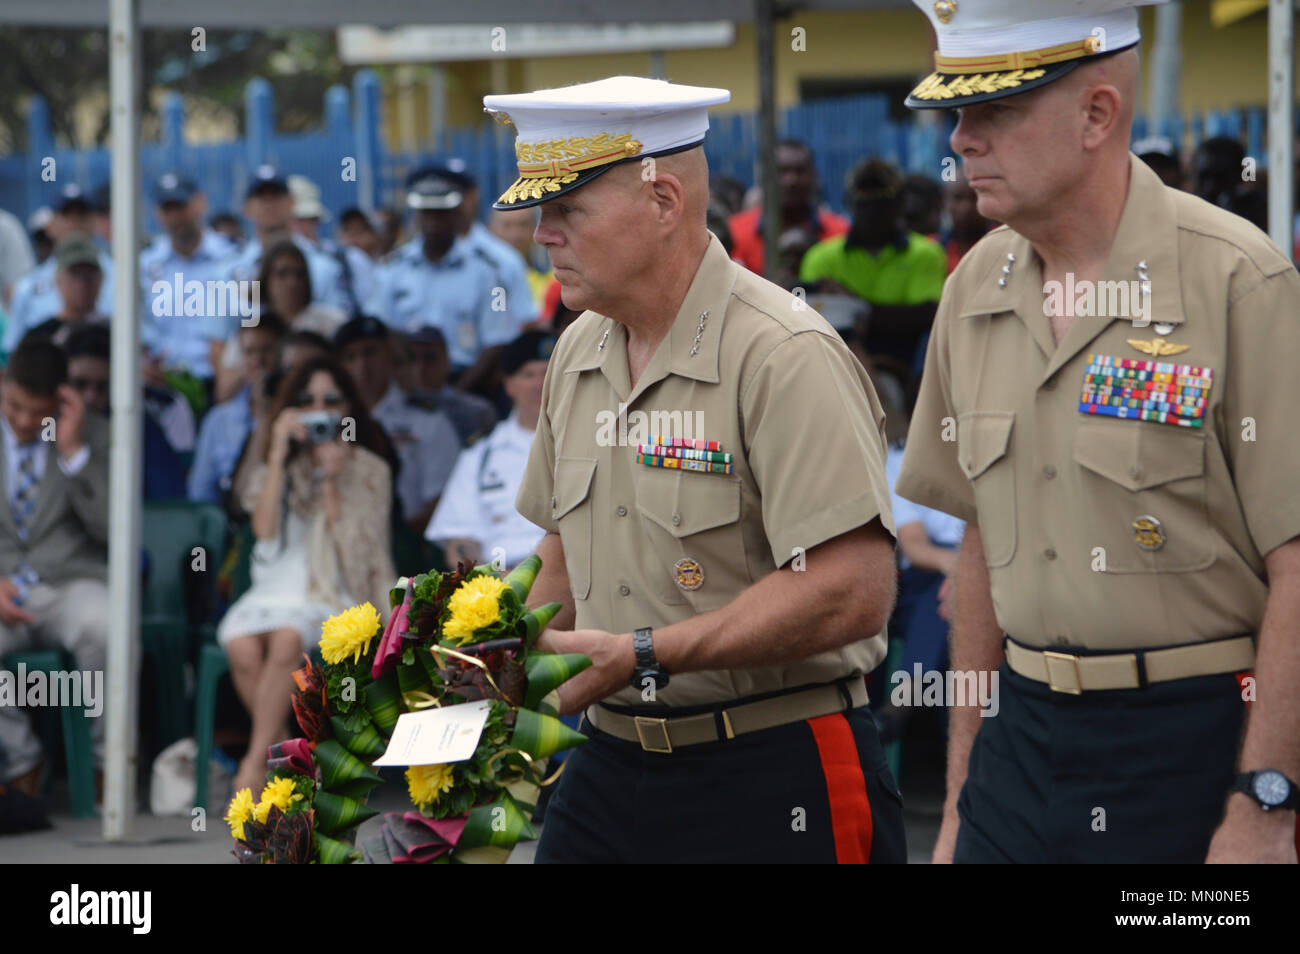 Gen. Robert B. Neller (left), Commandant of the Marine Corps, carries a wreath to be laid at the Solomon Scouts and Coastwatchers Memorial during 75th Anniversary of the Battle for Guadalcanal ceremonies at Honiara, Guadalcanal in the Solomon Islands, on Aug. 7, 2017. Solomon Scouts and Coastwatchers provided invaluable support and aid to the Allied effort during World War II. Two Solomon Islanders, Eroni Kumana and Biukuk Gasa, rescued U.S. Navy Lt. John F. Kennedy and his 10 surviving crew fro PT-109, August 1943. Kennedy later became president of the United States. (U.S. Army photo by Staff - Stock Image